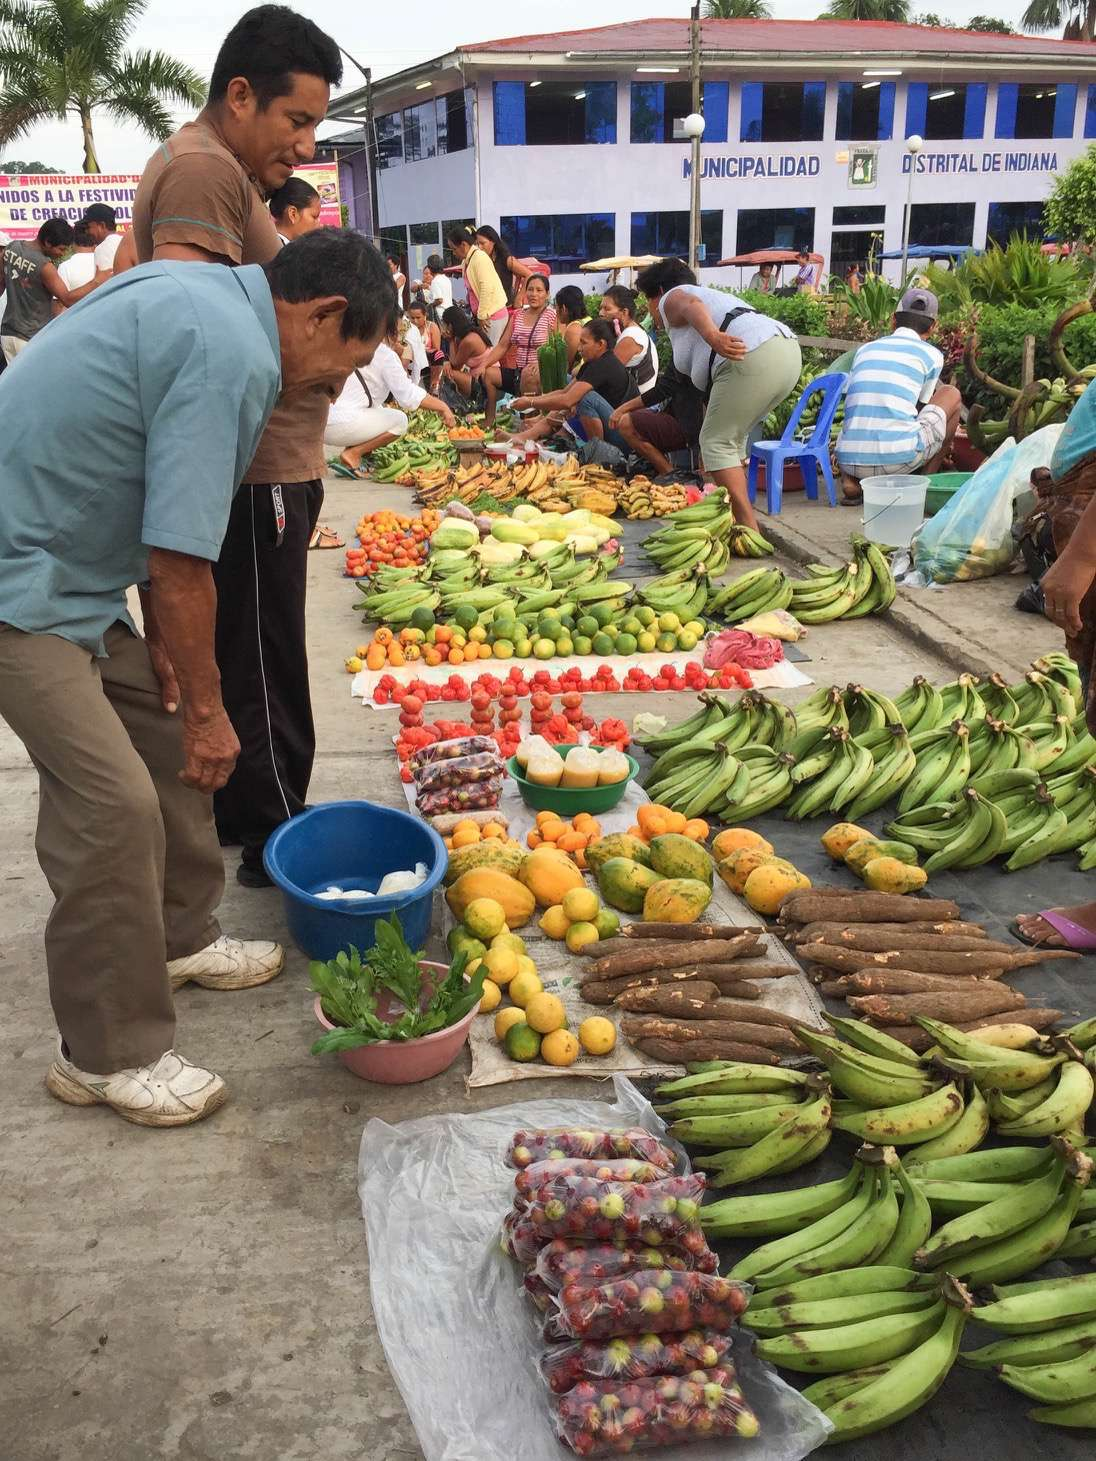 Small villages up and down the Amazon raise food crops for sale at open air markets.